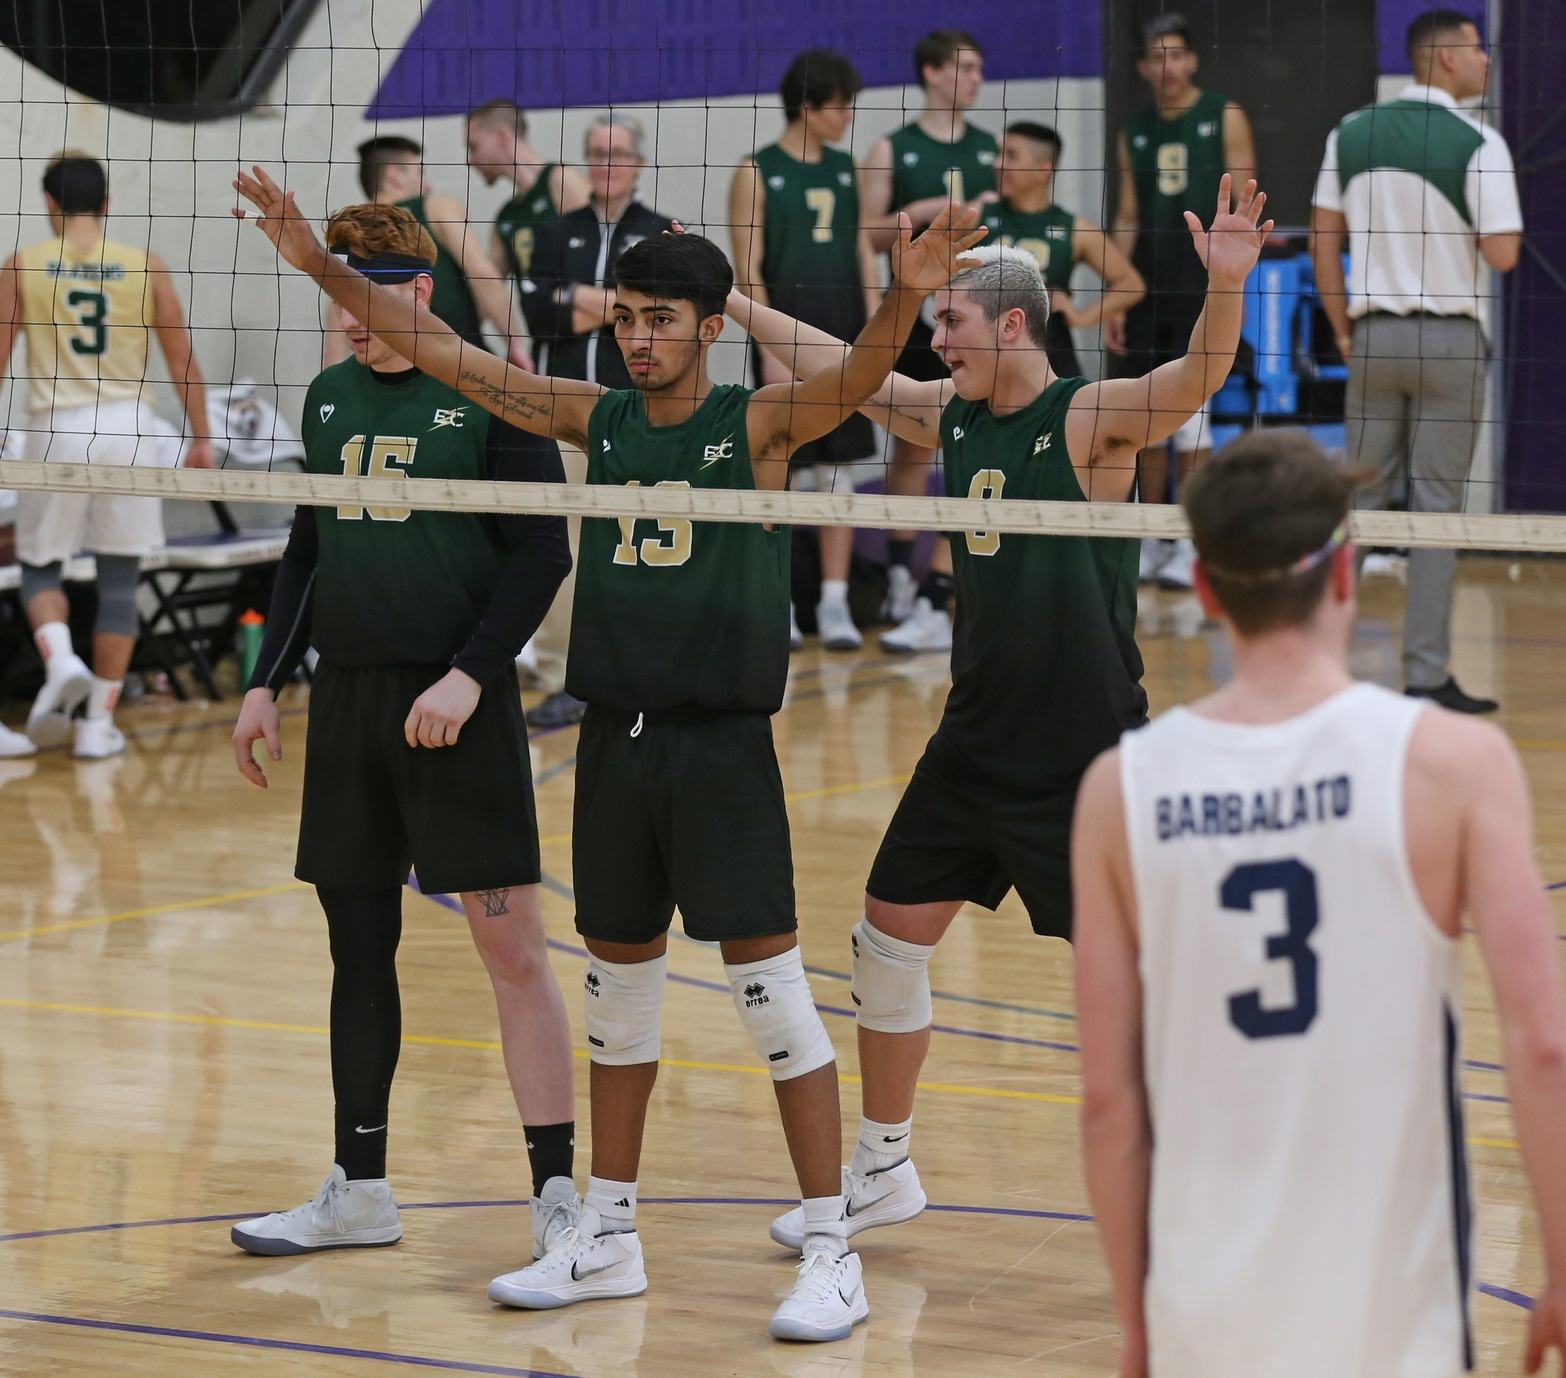 #5 Blazers Sweep Past Lions and Into Conference Finals